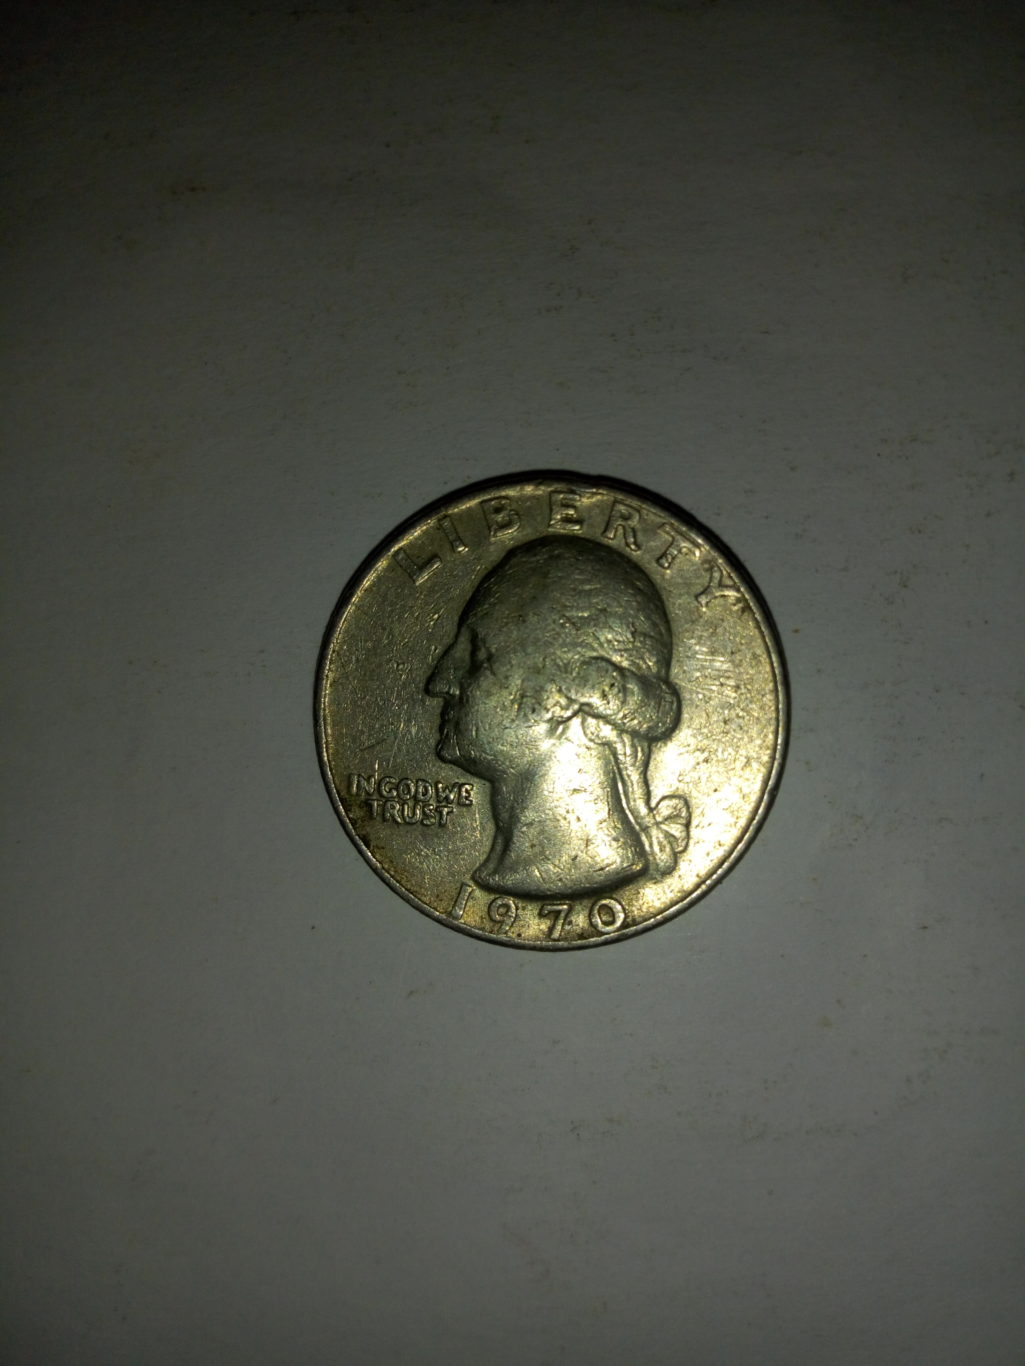 1970_united States of america quarter dollar